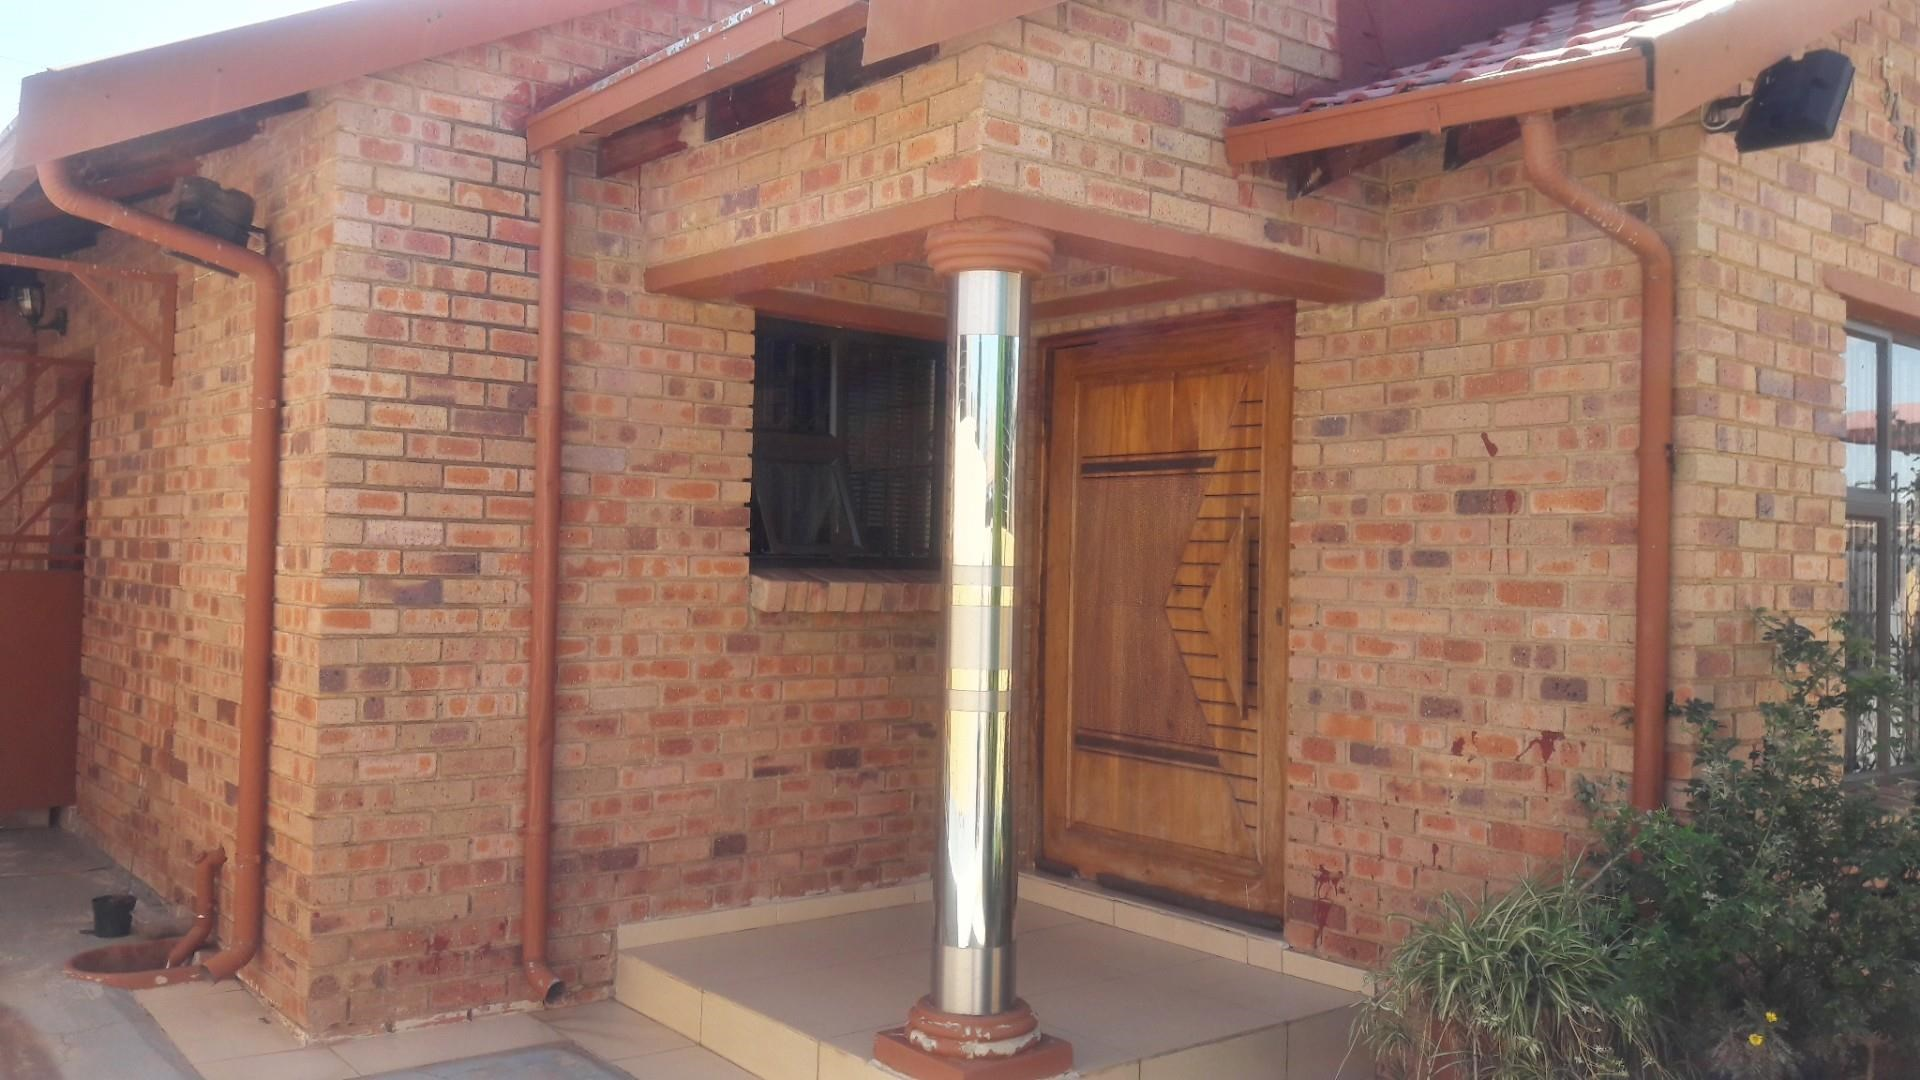 2 Bedroom House for Sale in Ormonde View